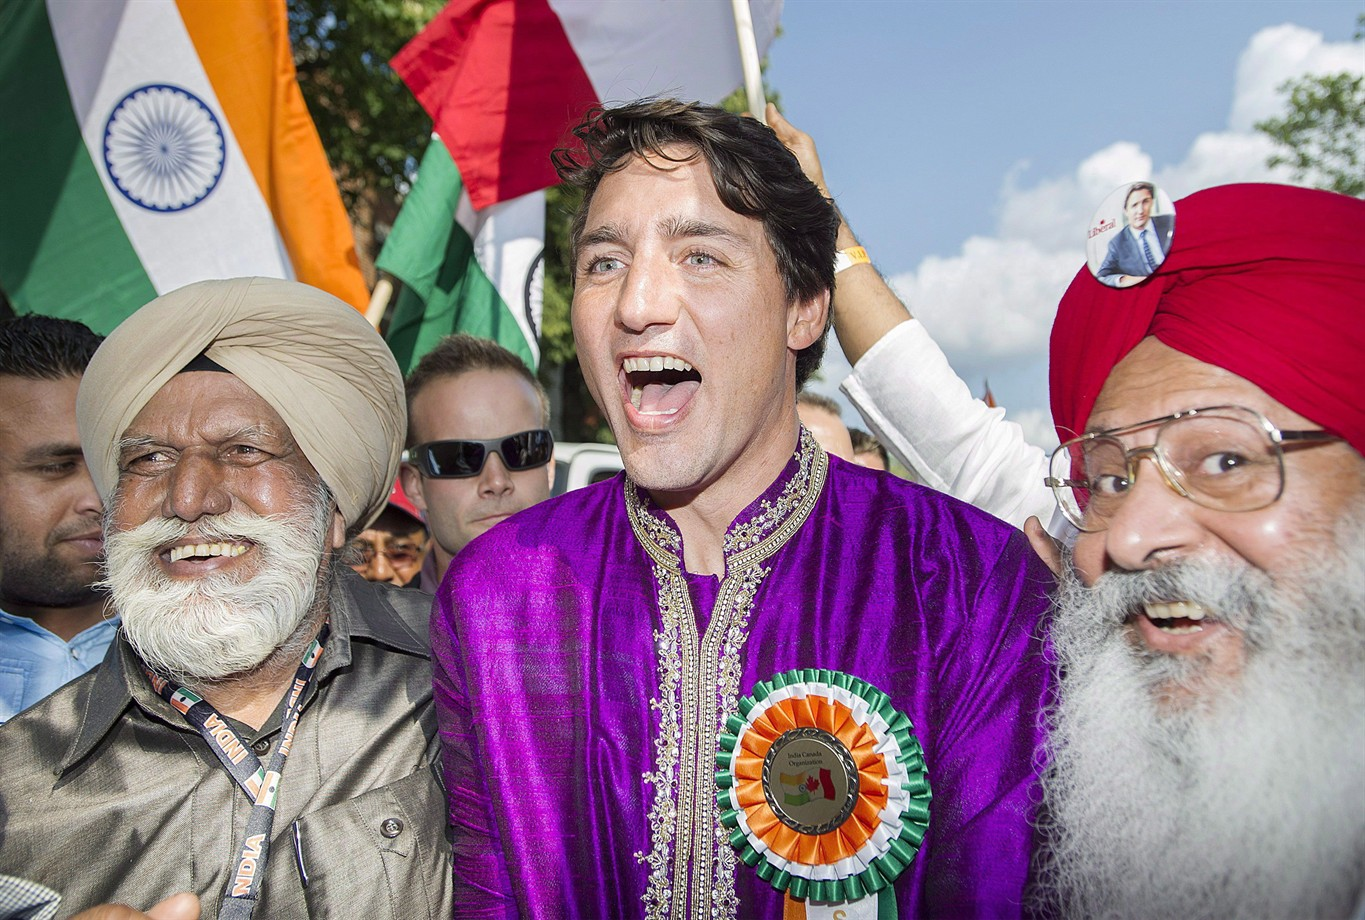 Justin Trudeau to visit India in February, says Indian news